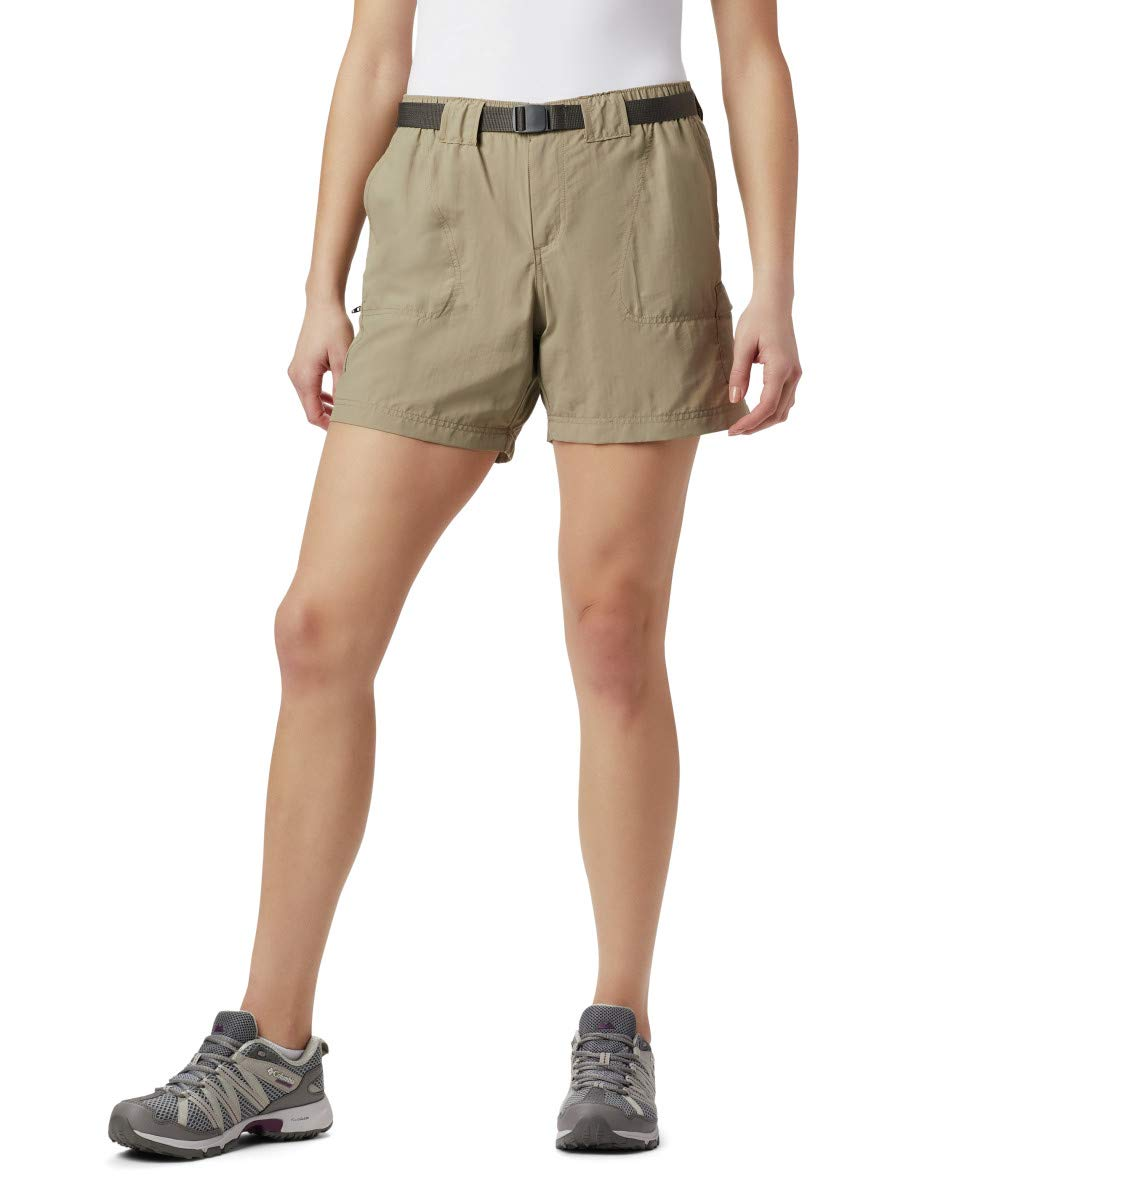 Columbia Women's Sandy River Cargo Short, Tusk, X-Small by Columbia